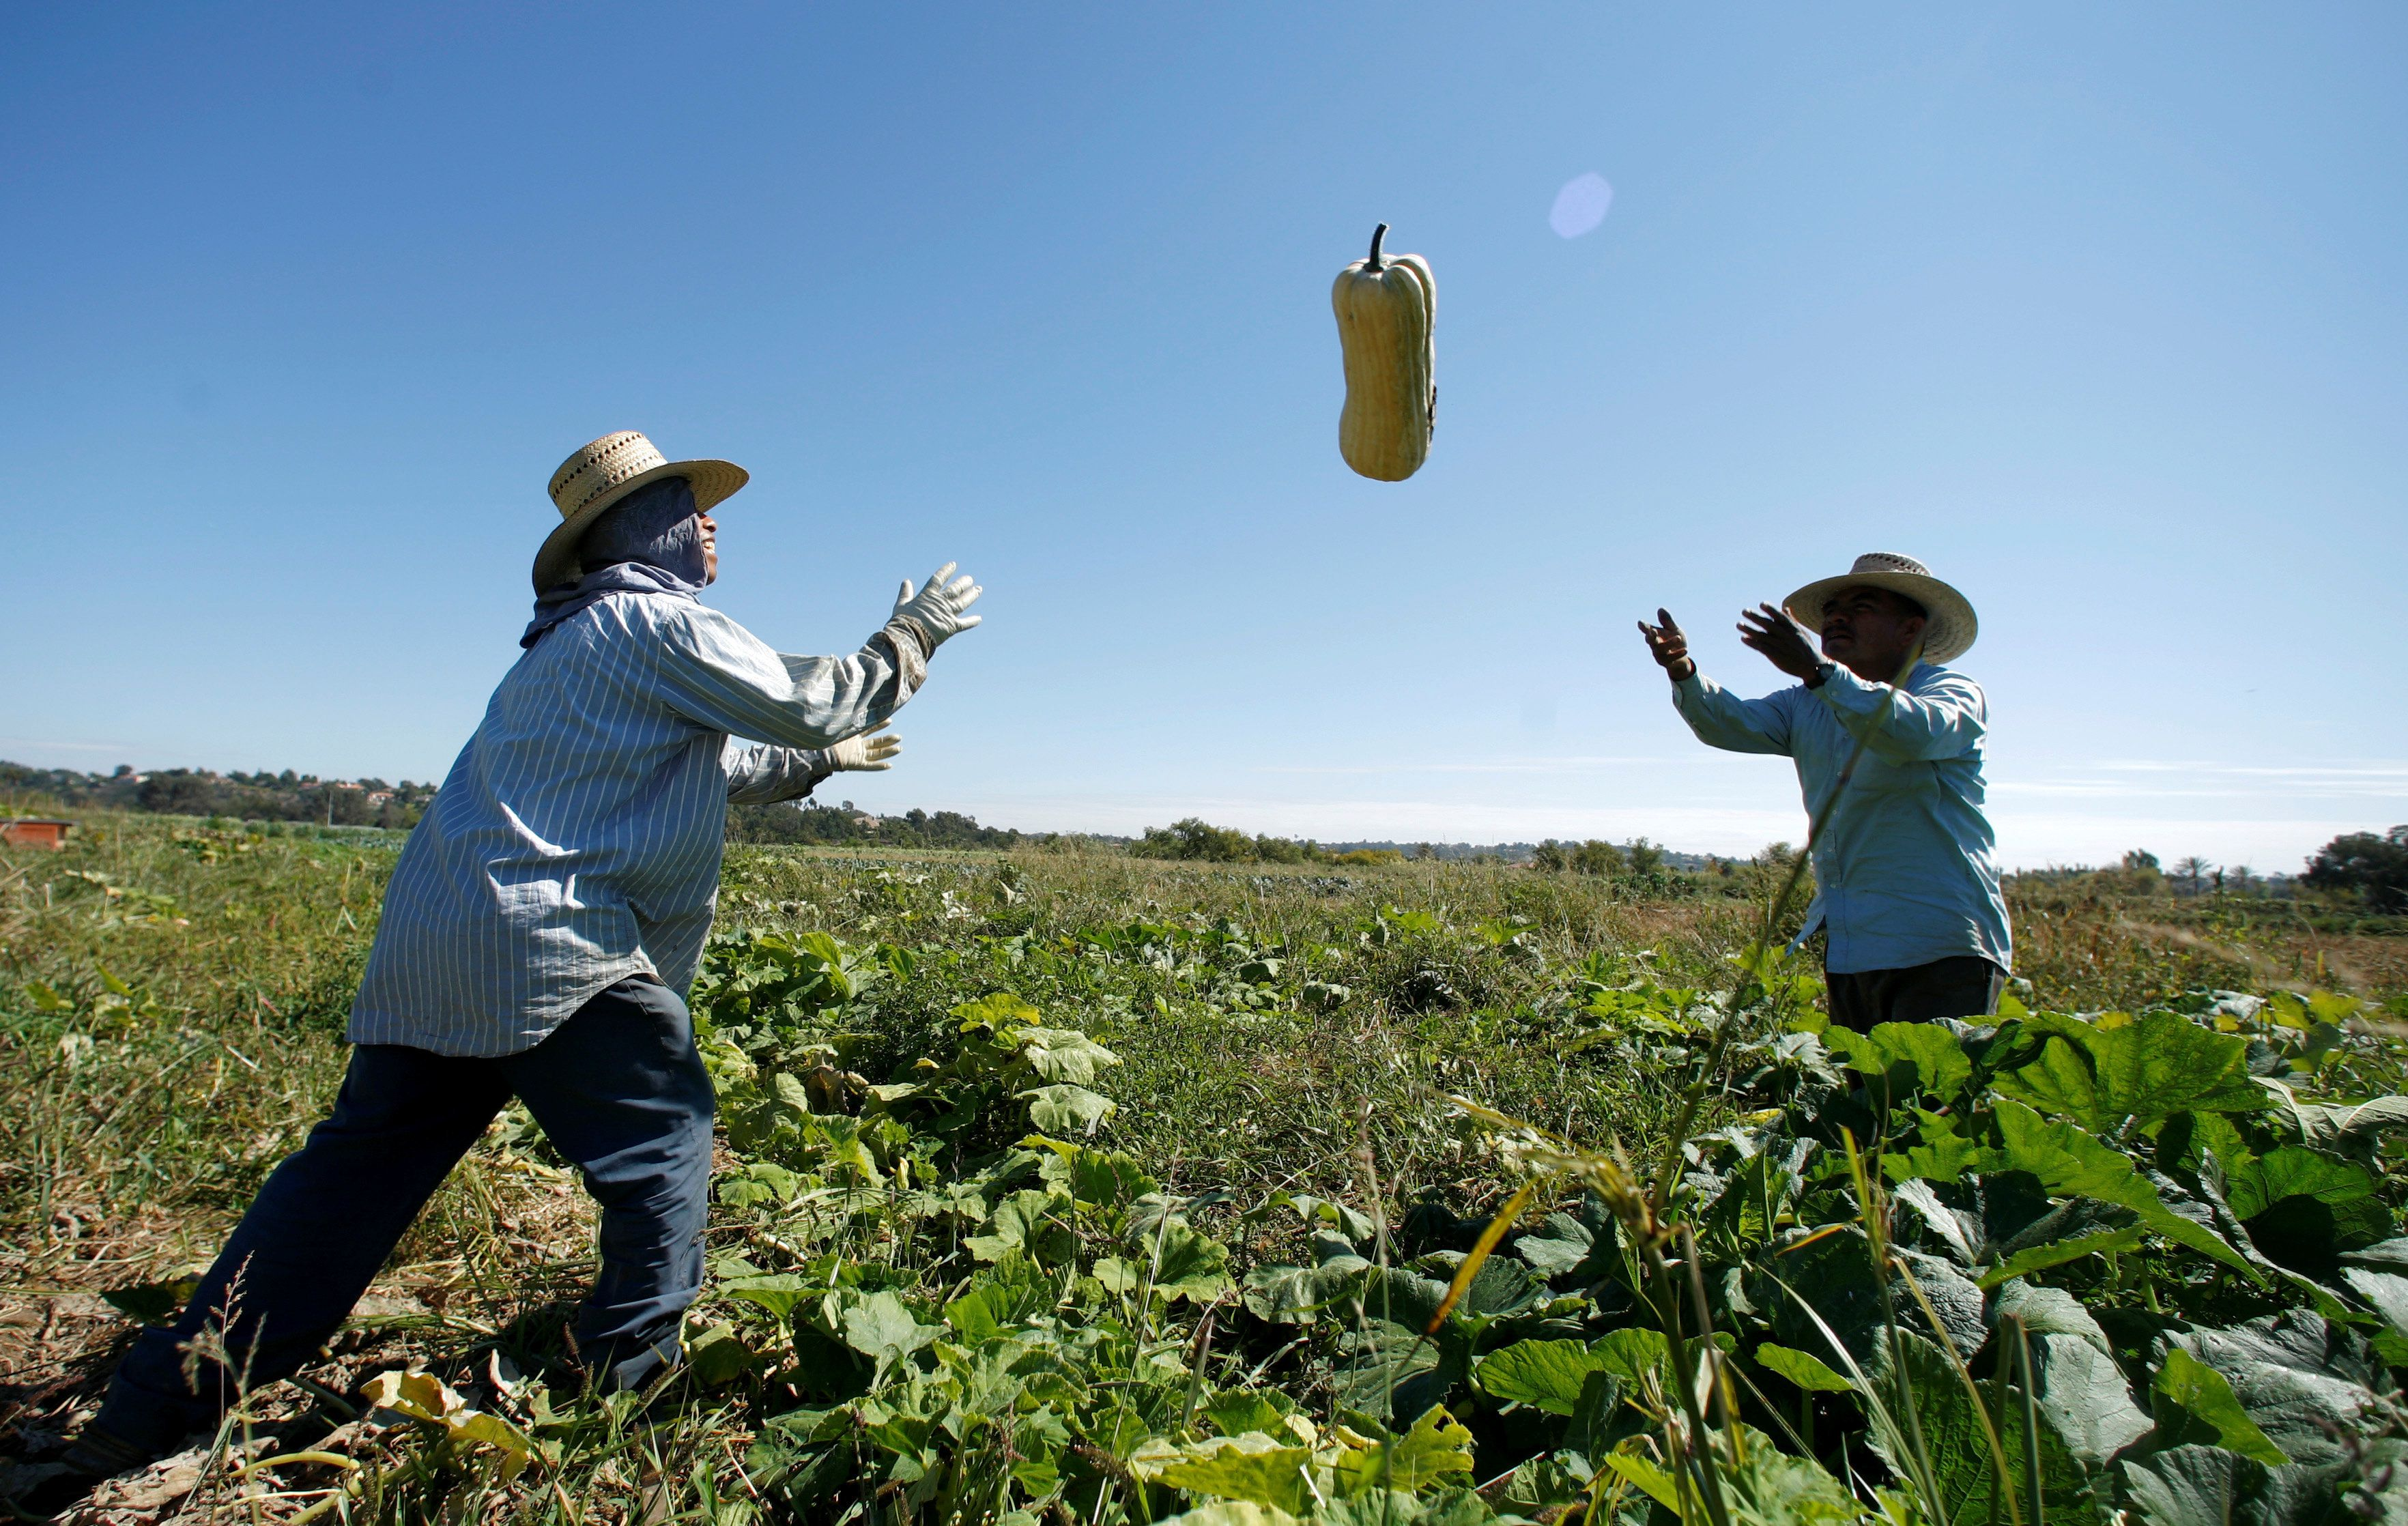 FILE PHOTO - Farm workers harvest squash from the Chino Farm in Rancho Santa Fe, California, U.S. on October 3, 2007.      REUTERS/Mike Blake/File Photo